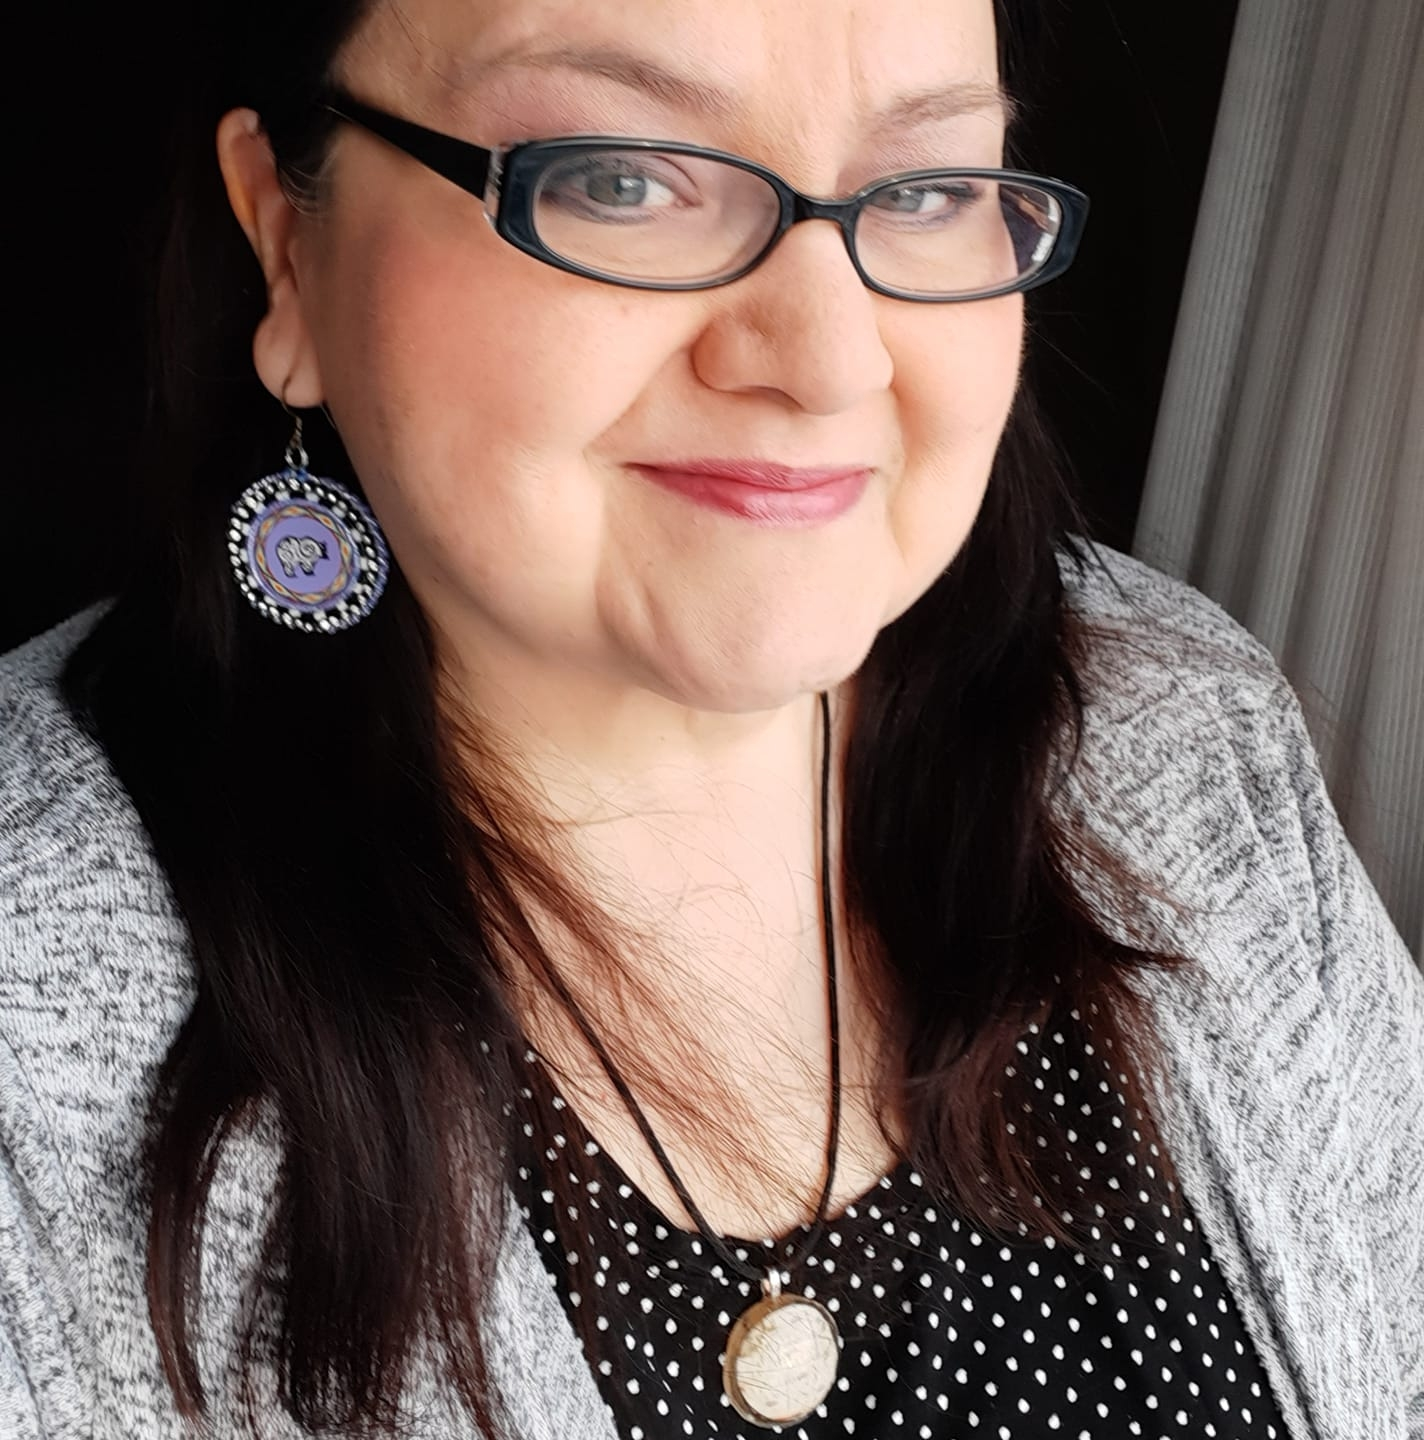 Judith Keesic, Resin Art, Beadwork Jewelry, Earrings, Necklaces, ornaments, Rings, bracelets, Indigenous Artist, First Nations, Indigenous Arts Collective of Canada, Pass The Feather